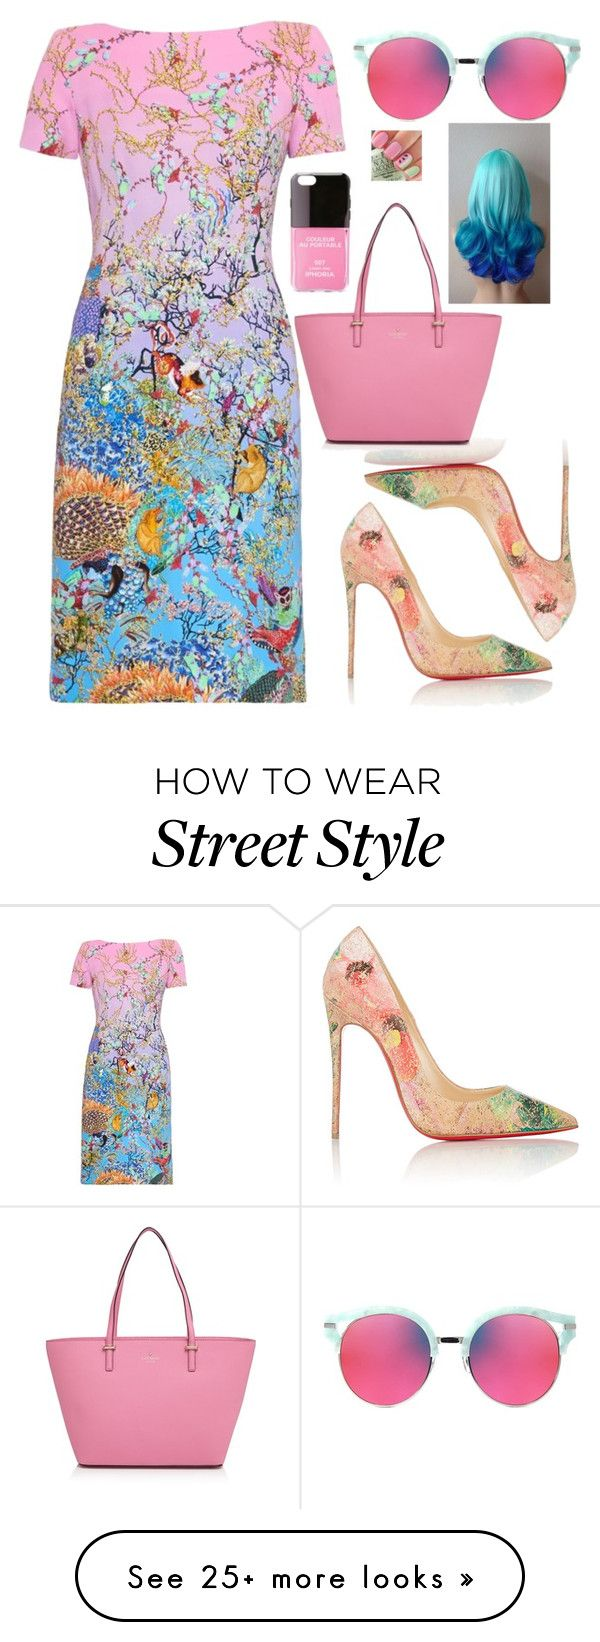 """""""Sassy Woman"""" by lollidrop5 on Polyvore featuring Mary Katrantzou, Christian Louboutin, Kate Spade, Gentle Monster and Iphoria"""